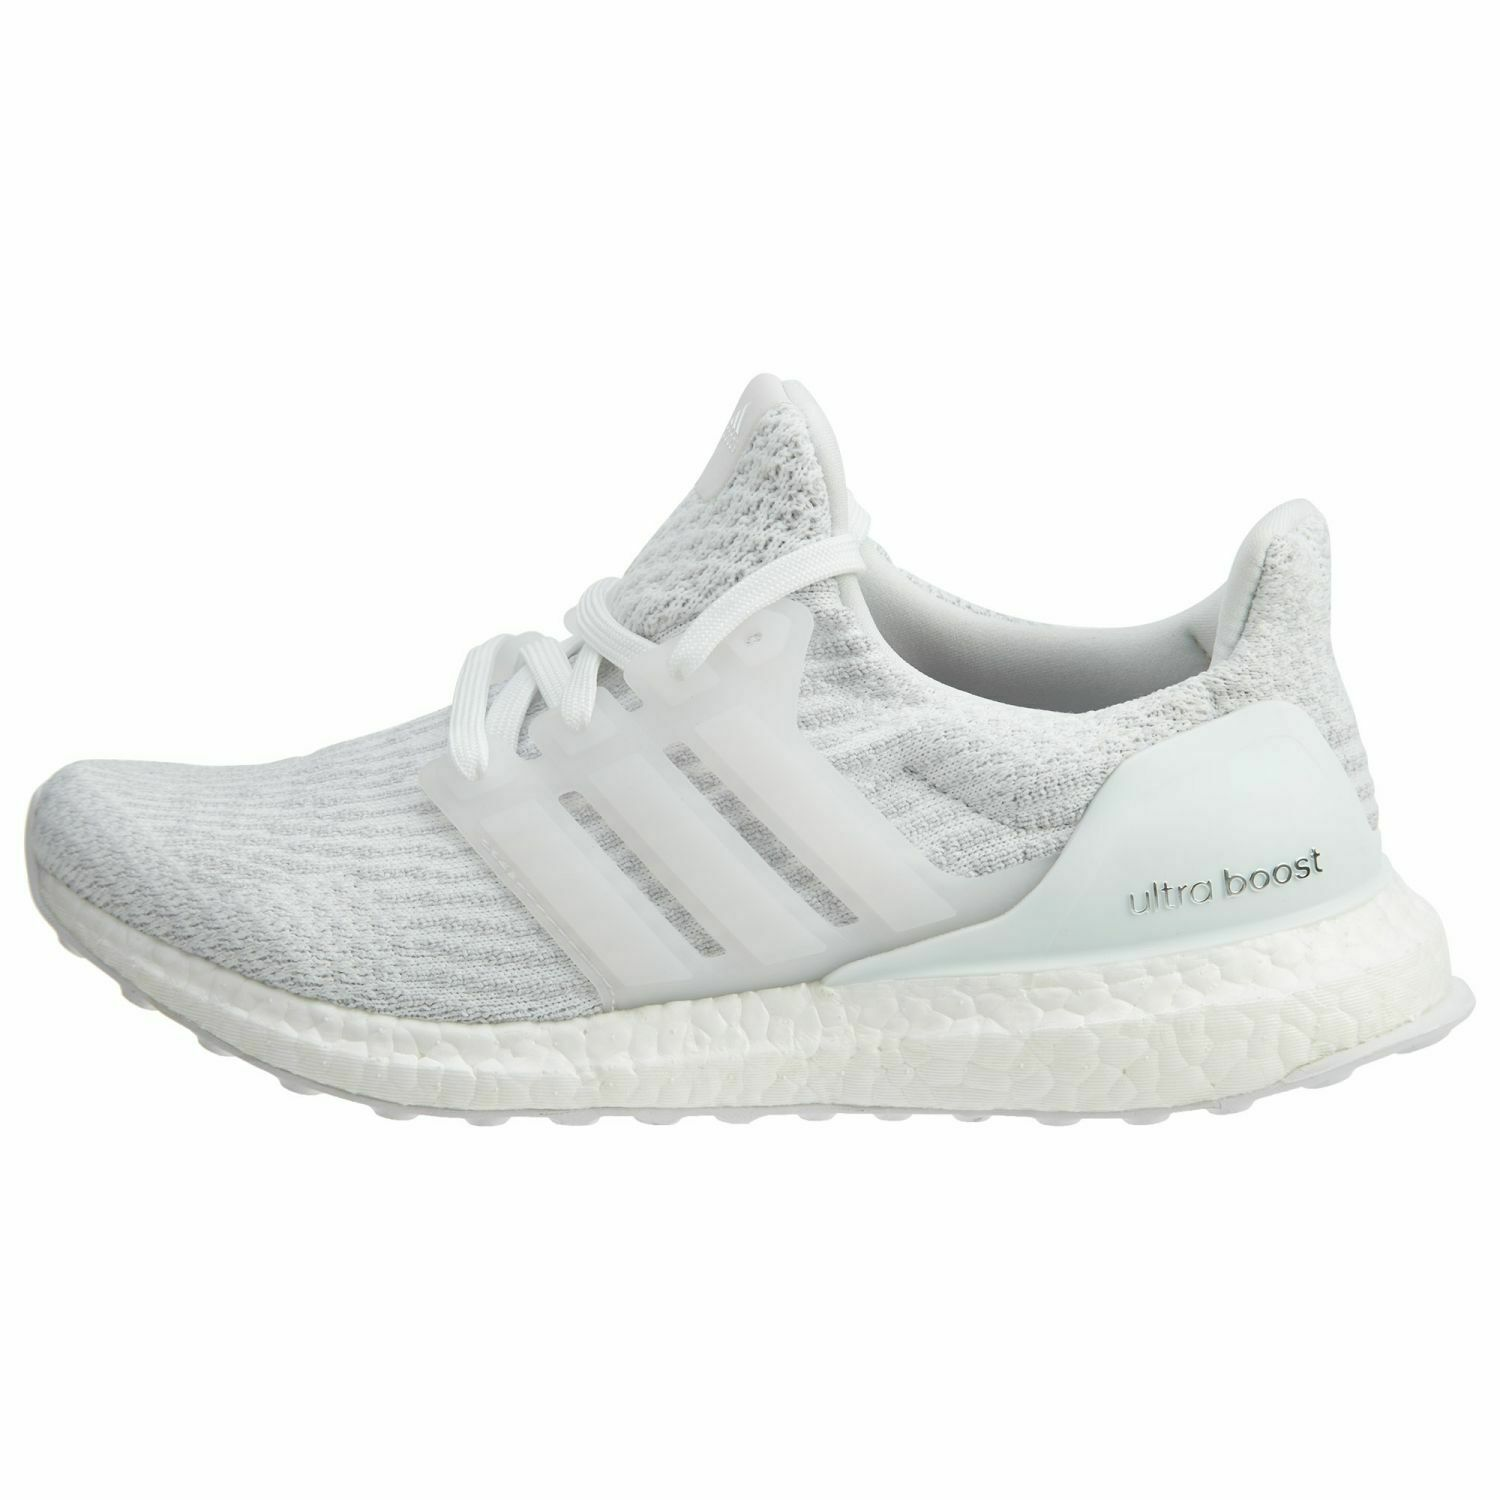 Adidas Ultra Boost Womens BA7686 Triple White Primeknit Running shoes Size 9.5